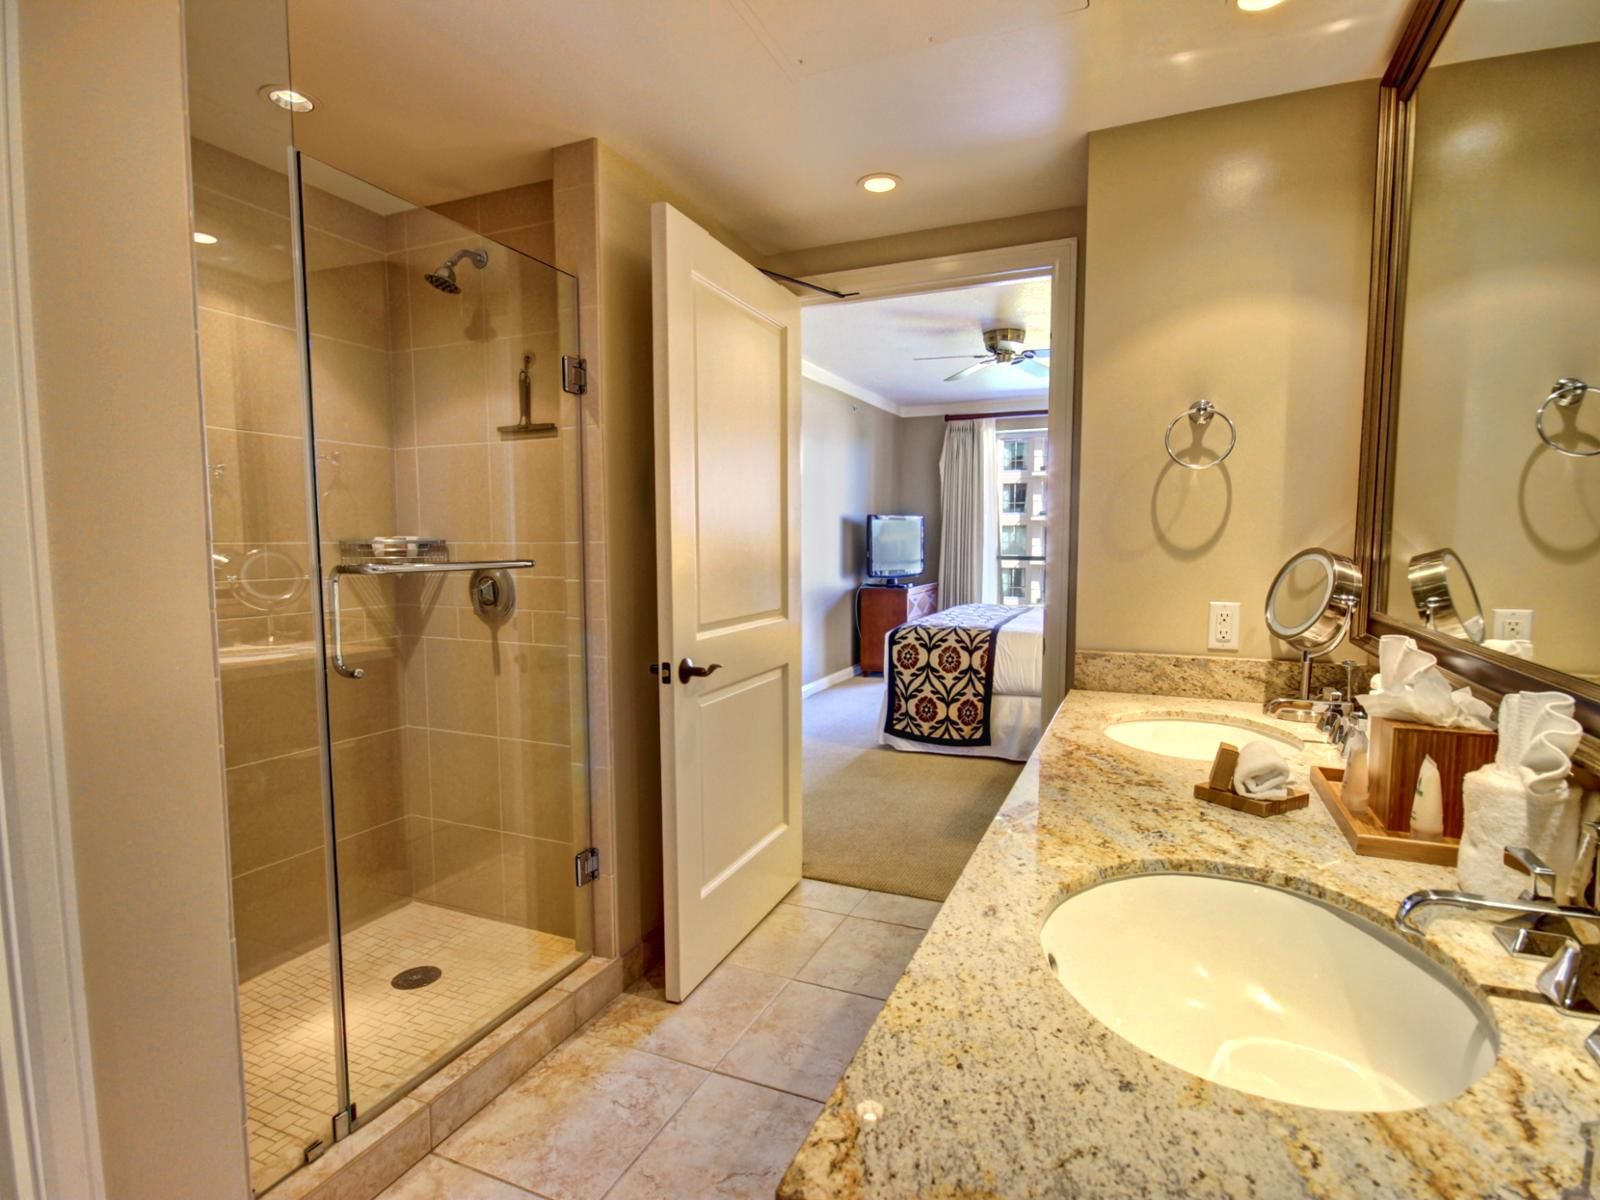 Large master bathroom with dual sink and an oversized vanity mirror.